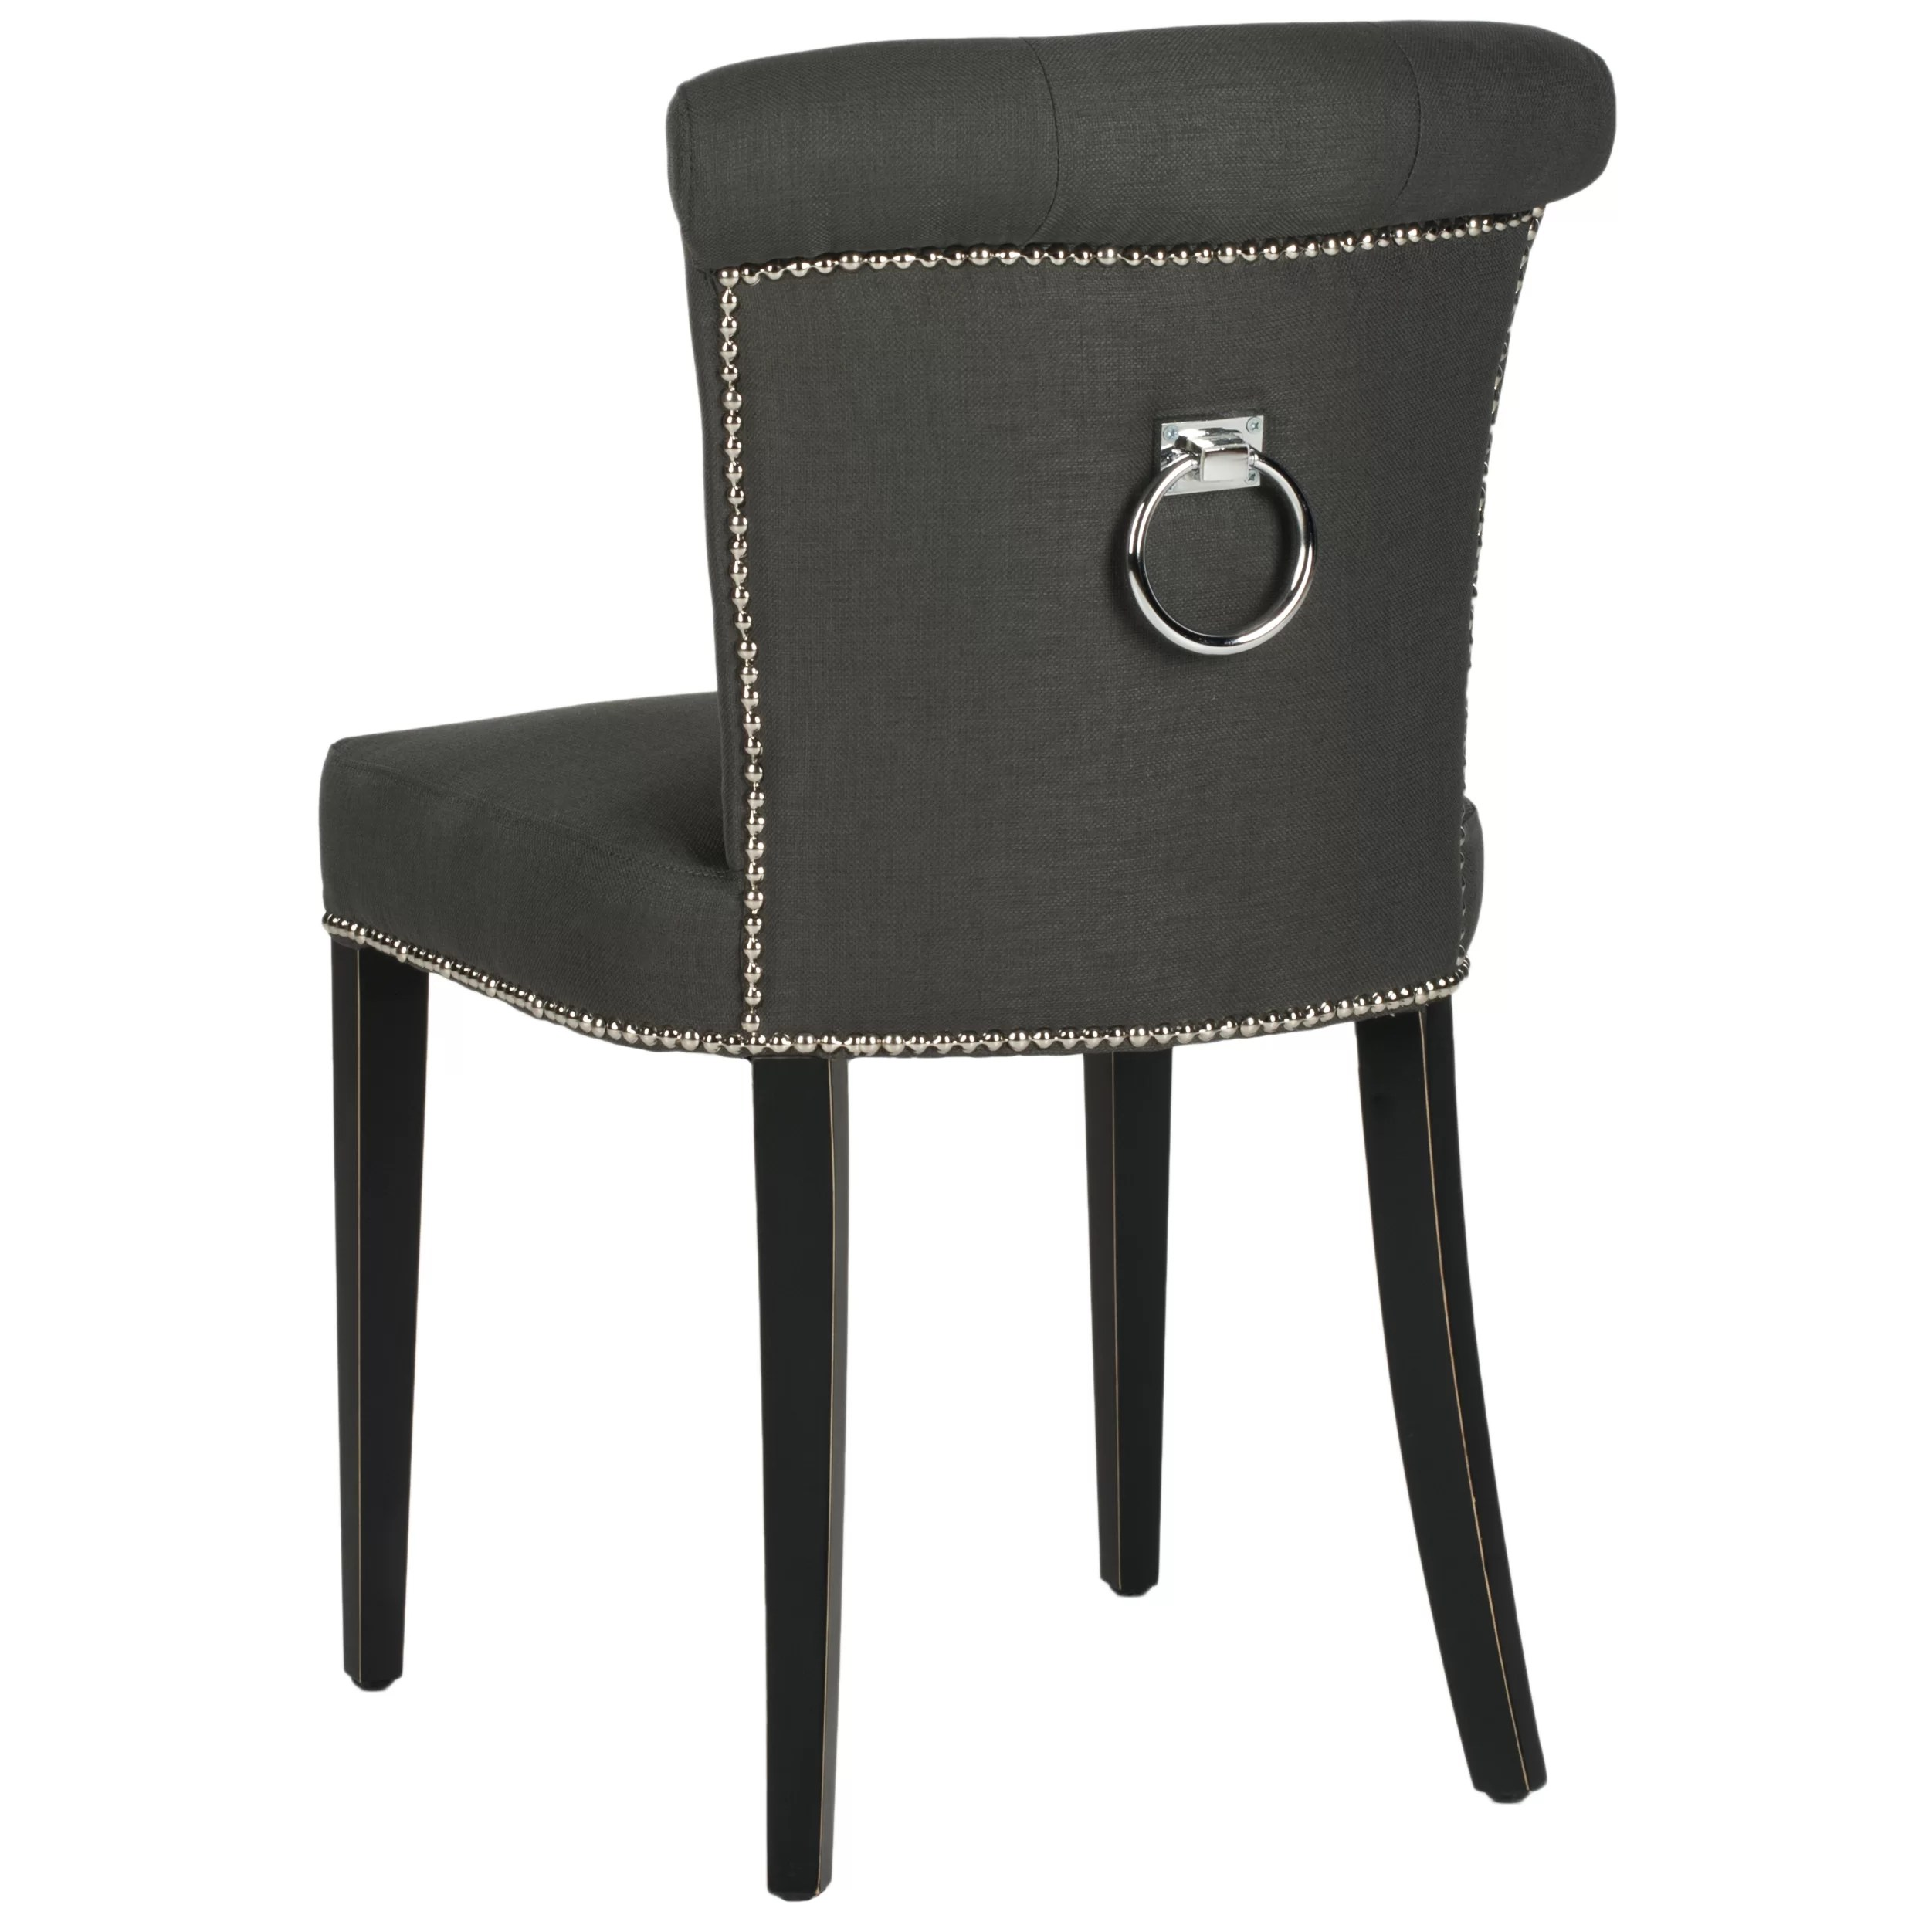 Wayfair Dining Chairs Safavieh Arion Ring Side Chair And Reviews Wayfair